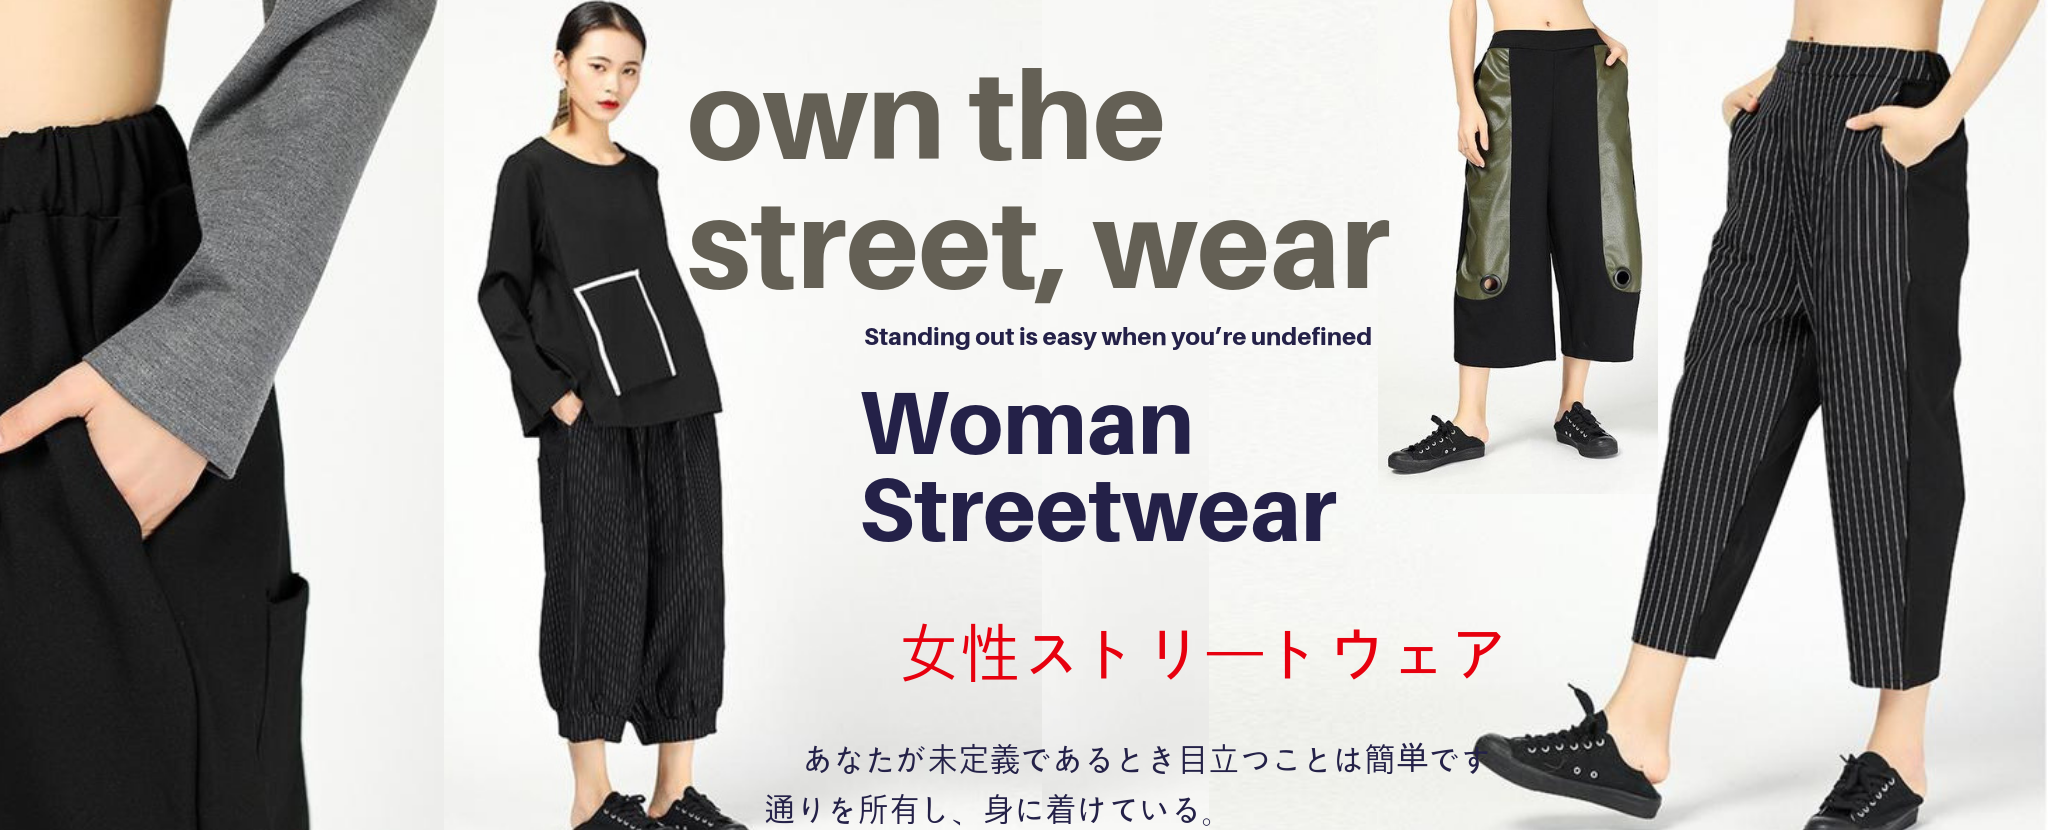 miTeigi | Woman Streetwear Apparel | Japanese Clothes and Home Decor